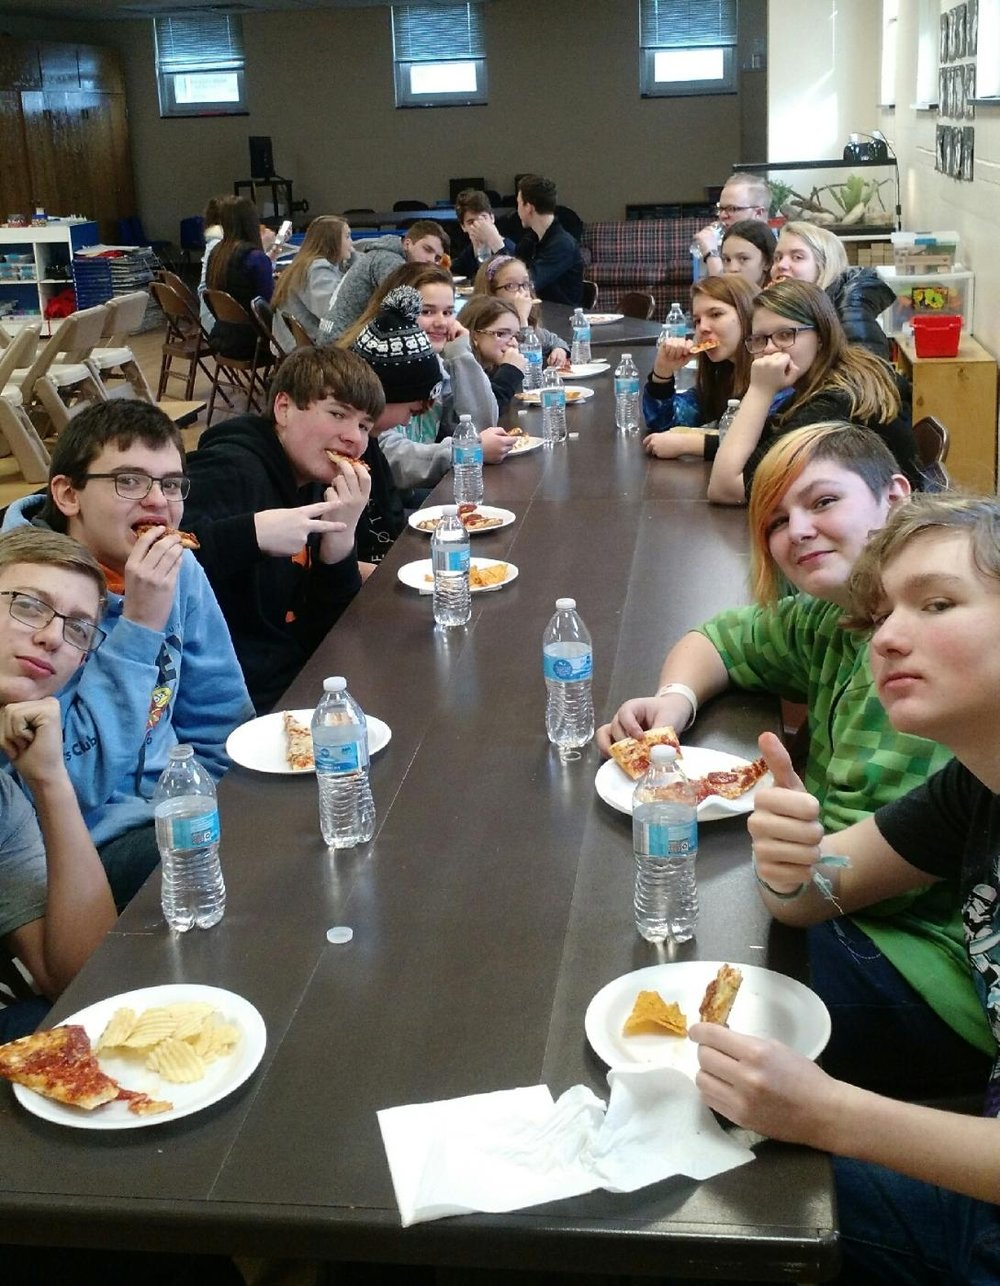 Youth Group begins with a simple meal provided by church members most Sunday evenings.